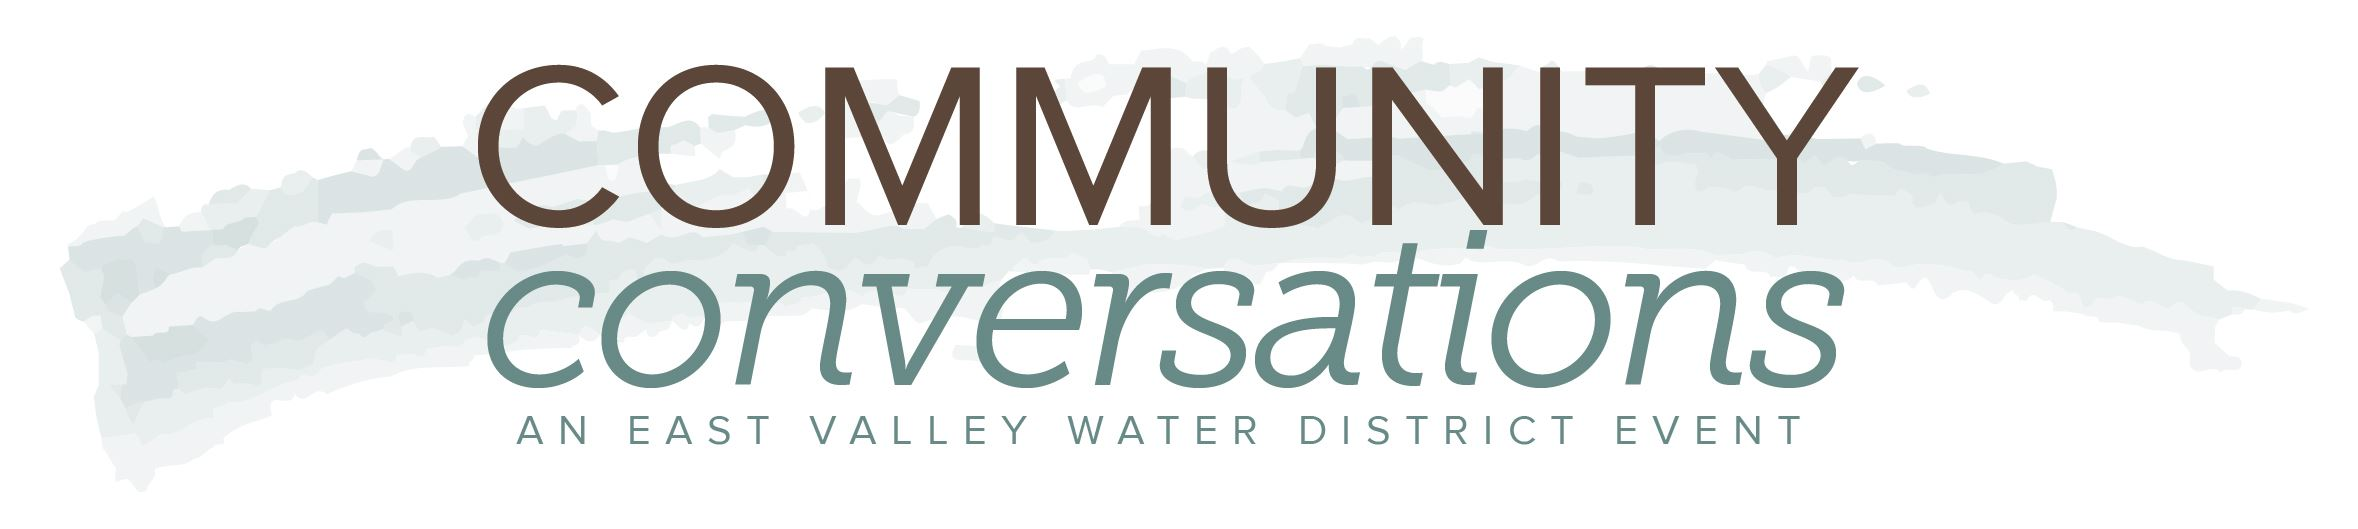 Community Conversation Logo